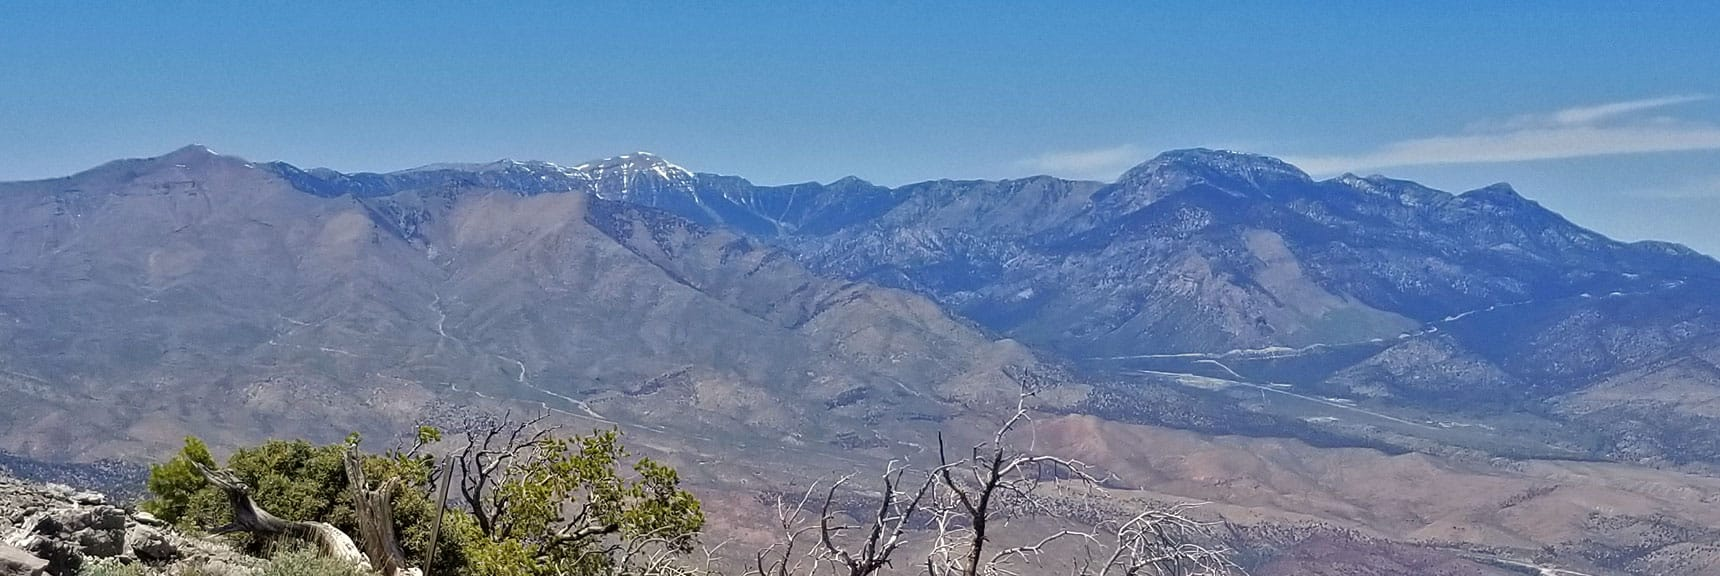 Close Up of Mt Charleston Wilderness Viewed from La Madre Mountain Summit | La Madre Mountain Northern Approach, Nevada